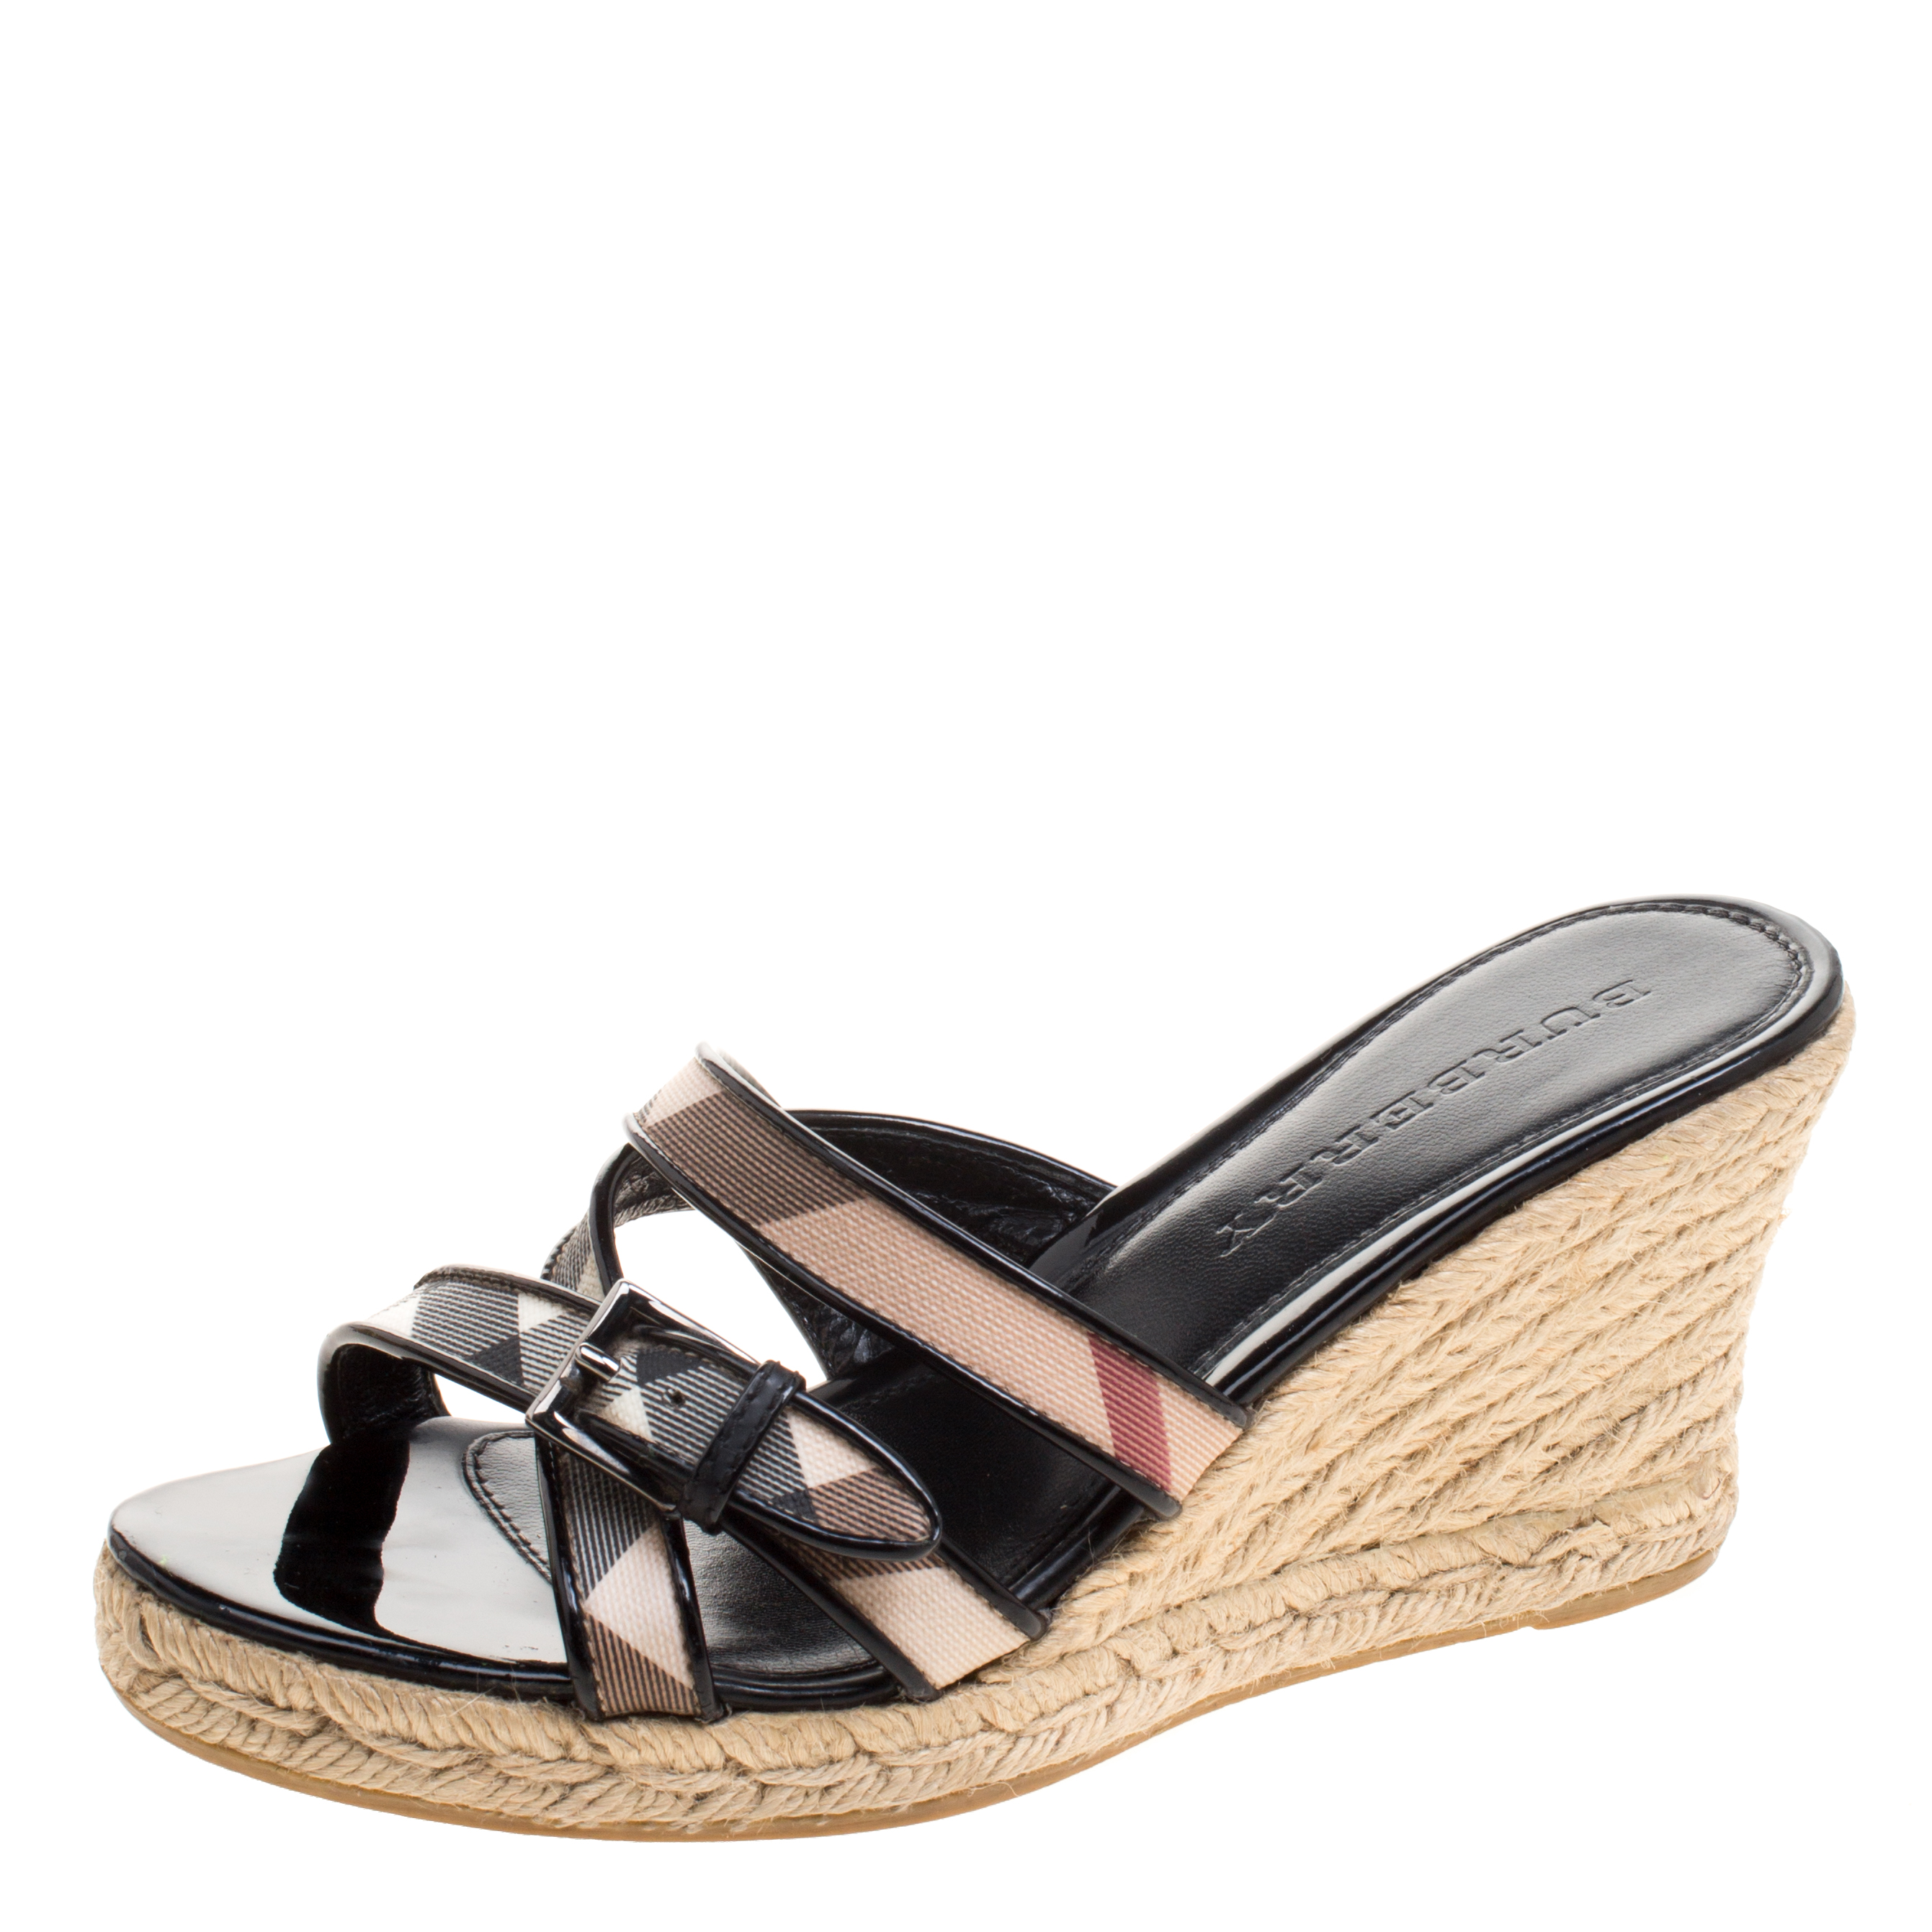 698c36b64 ... Burberry Black Patent Leather and Nova Check Canvas Espadrille Wedge  Sandals Size 37. nextprev. prevnext